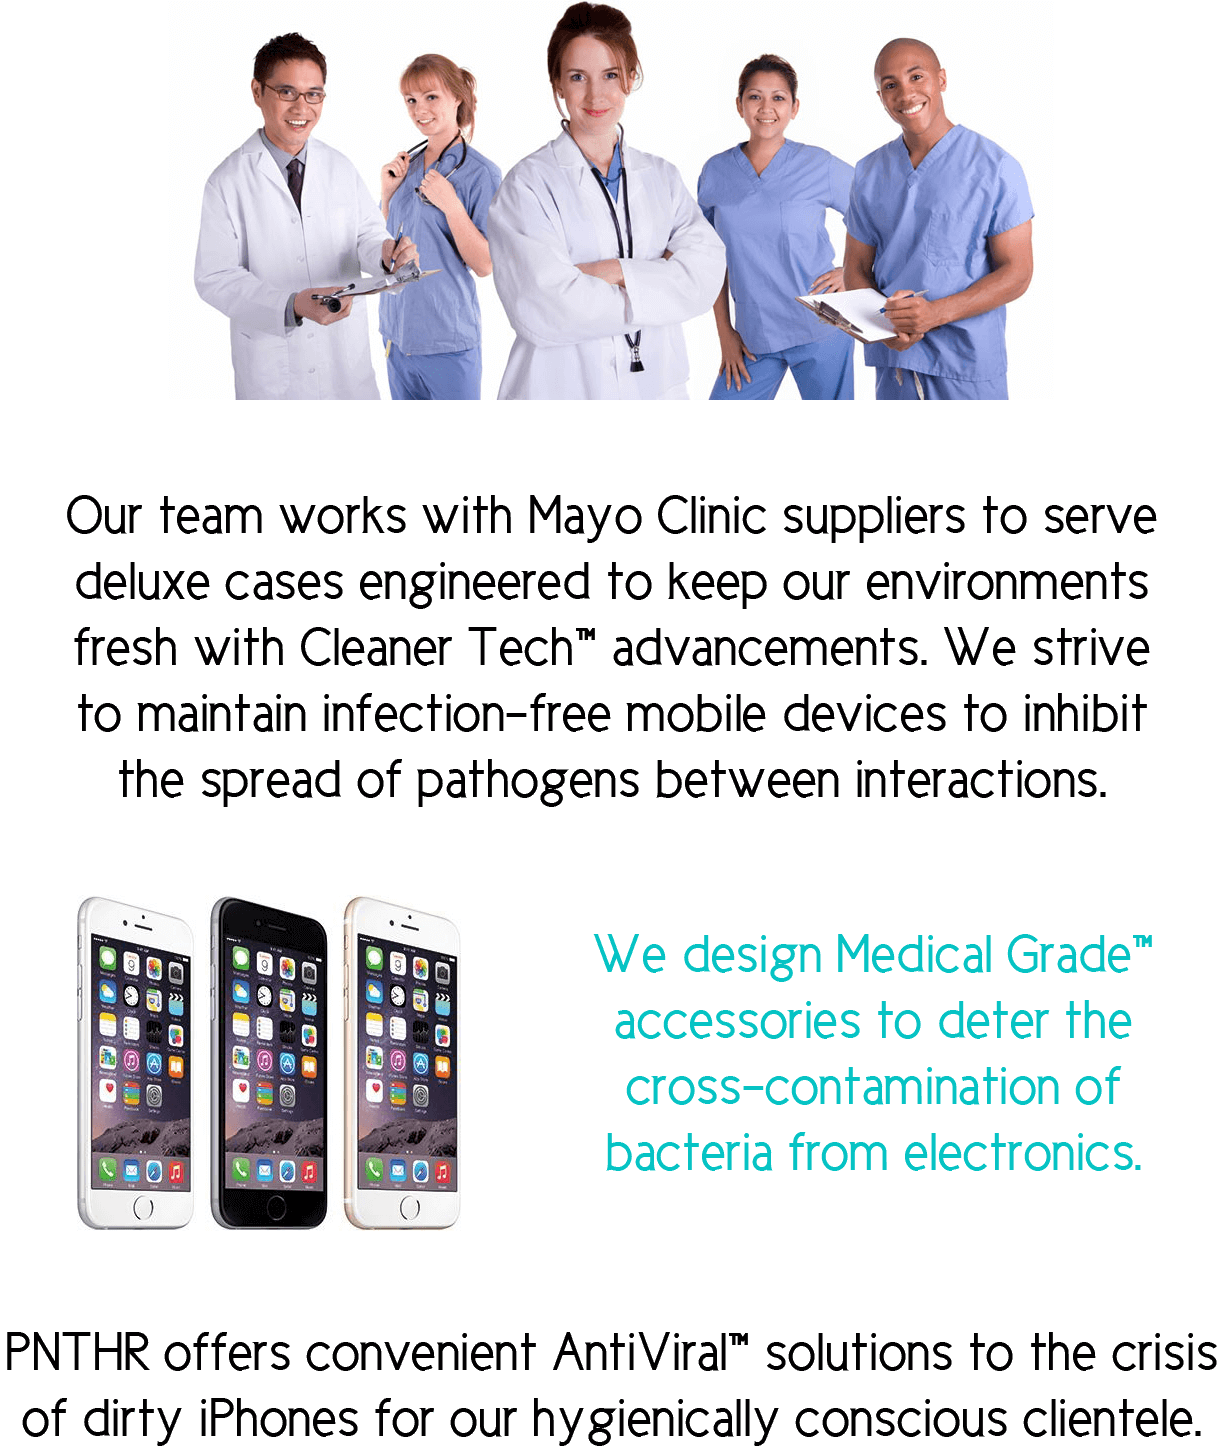 Our team works with Mayo Clinic suppliers to serve deluxe cases engineered to keep our environments fresh with Cleaner Tech™ advancements. We strive to maintain infection-free mobile devices to inhibit the spread of pathogens between interactions. We design Medical Grade™ accessories to deter the cross-contamination of bacteria from electronics. PNTHR offers convenient AntiViral™ solutions to the crisis of dirty iPhones for our hygienically conscious clientele.